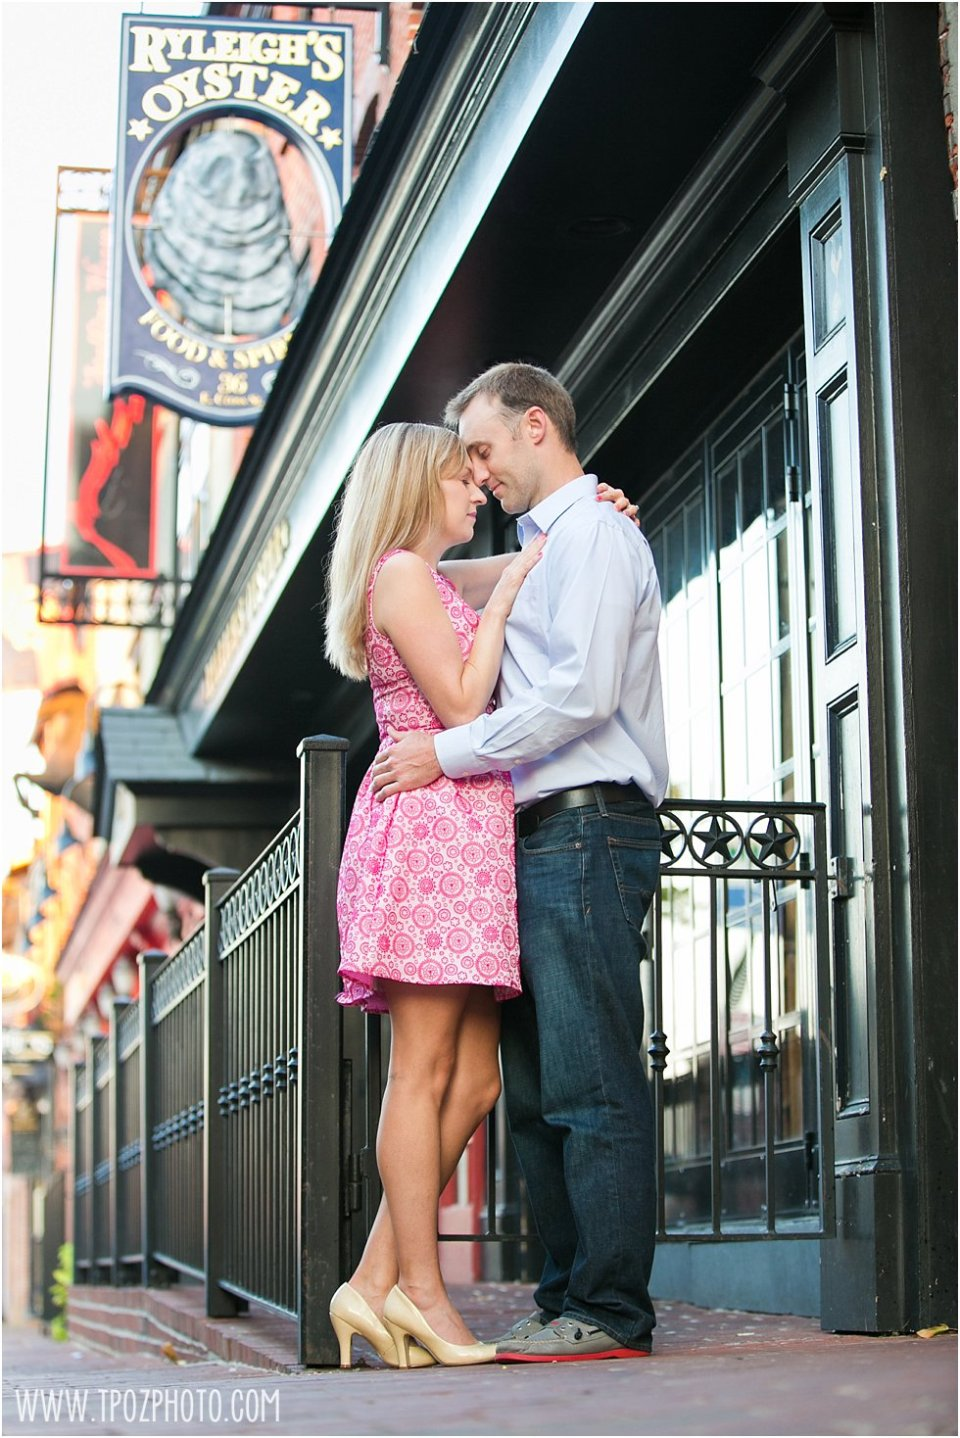 Engagement Photos at Ryleigh's Federal Hill •  tPoz Photography •  www.tpozphotoblog.com